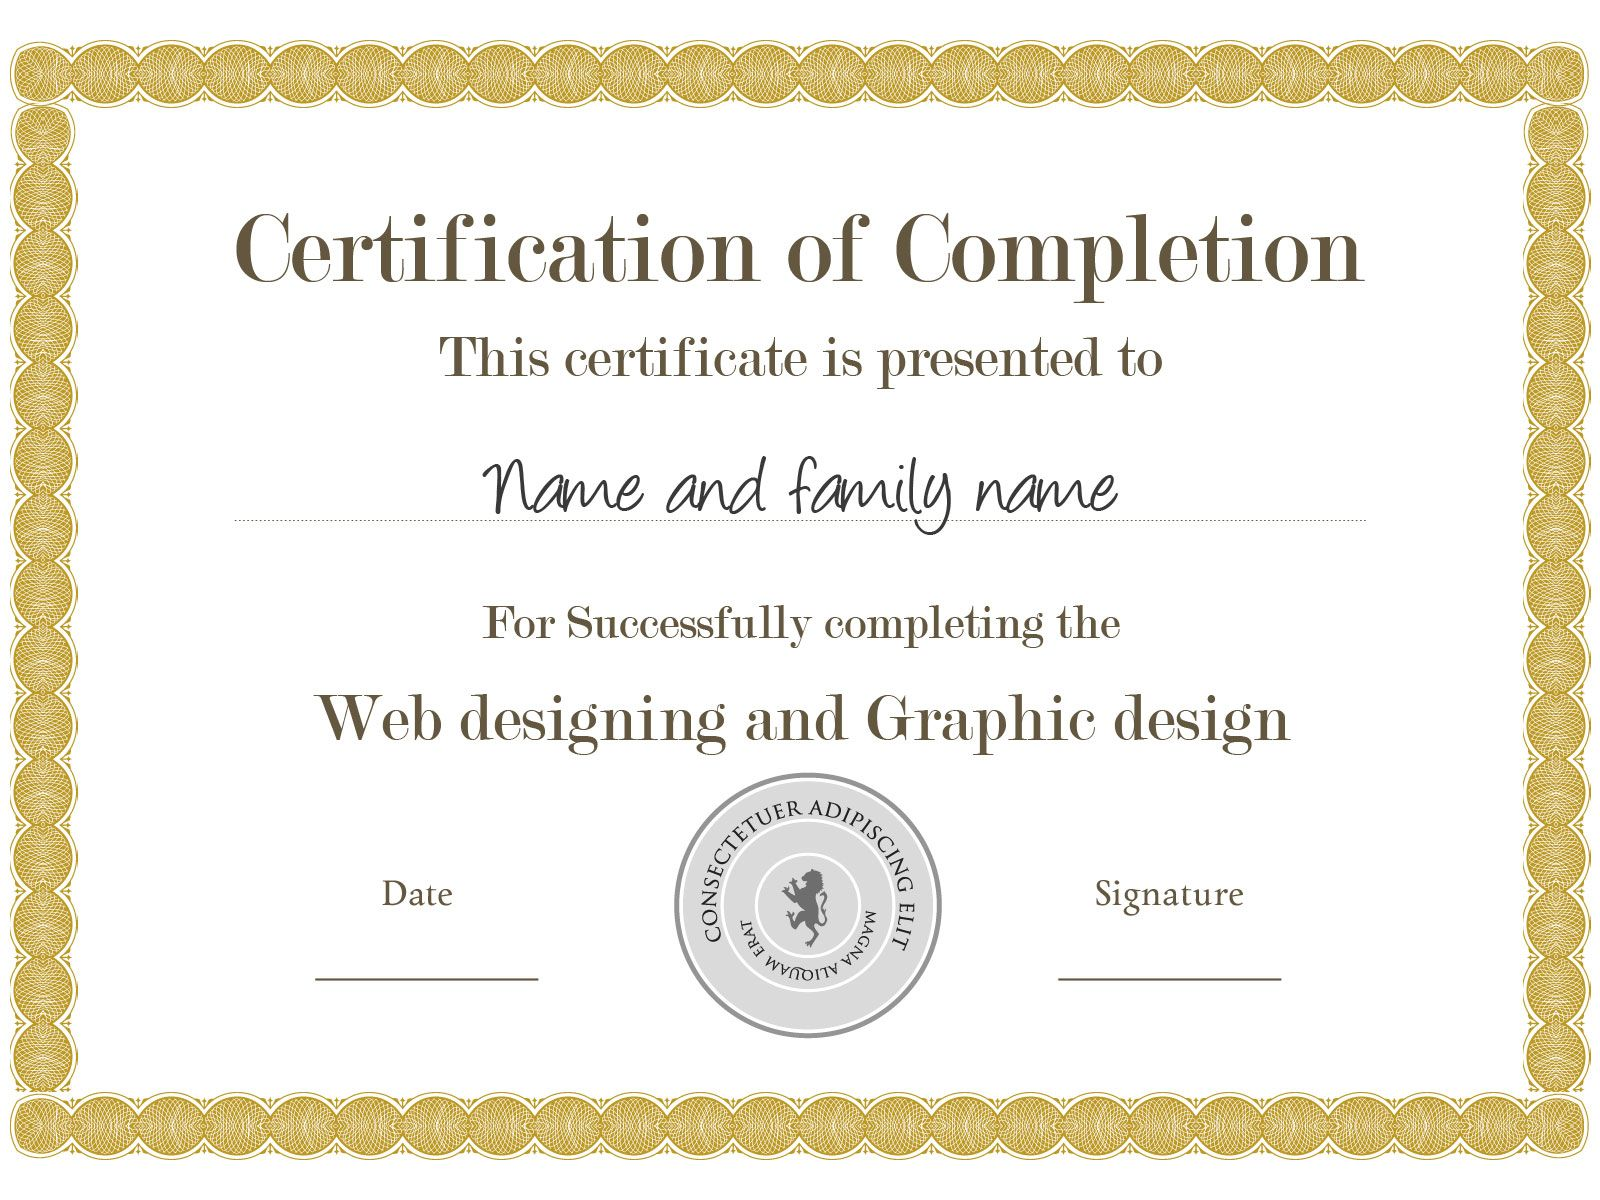 Example certificate template you can download this one and example certificate template you can download this one and others like it for free xflitez Gallery